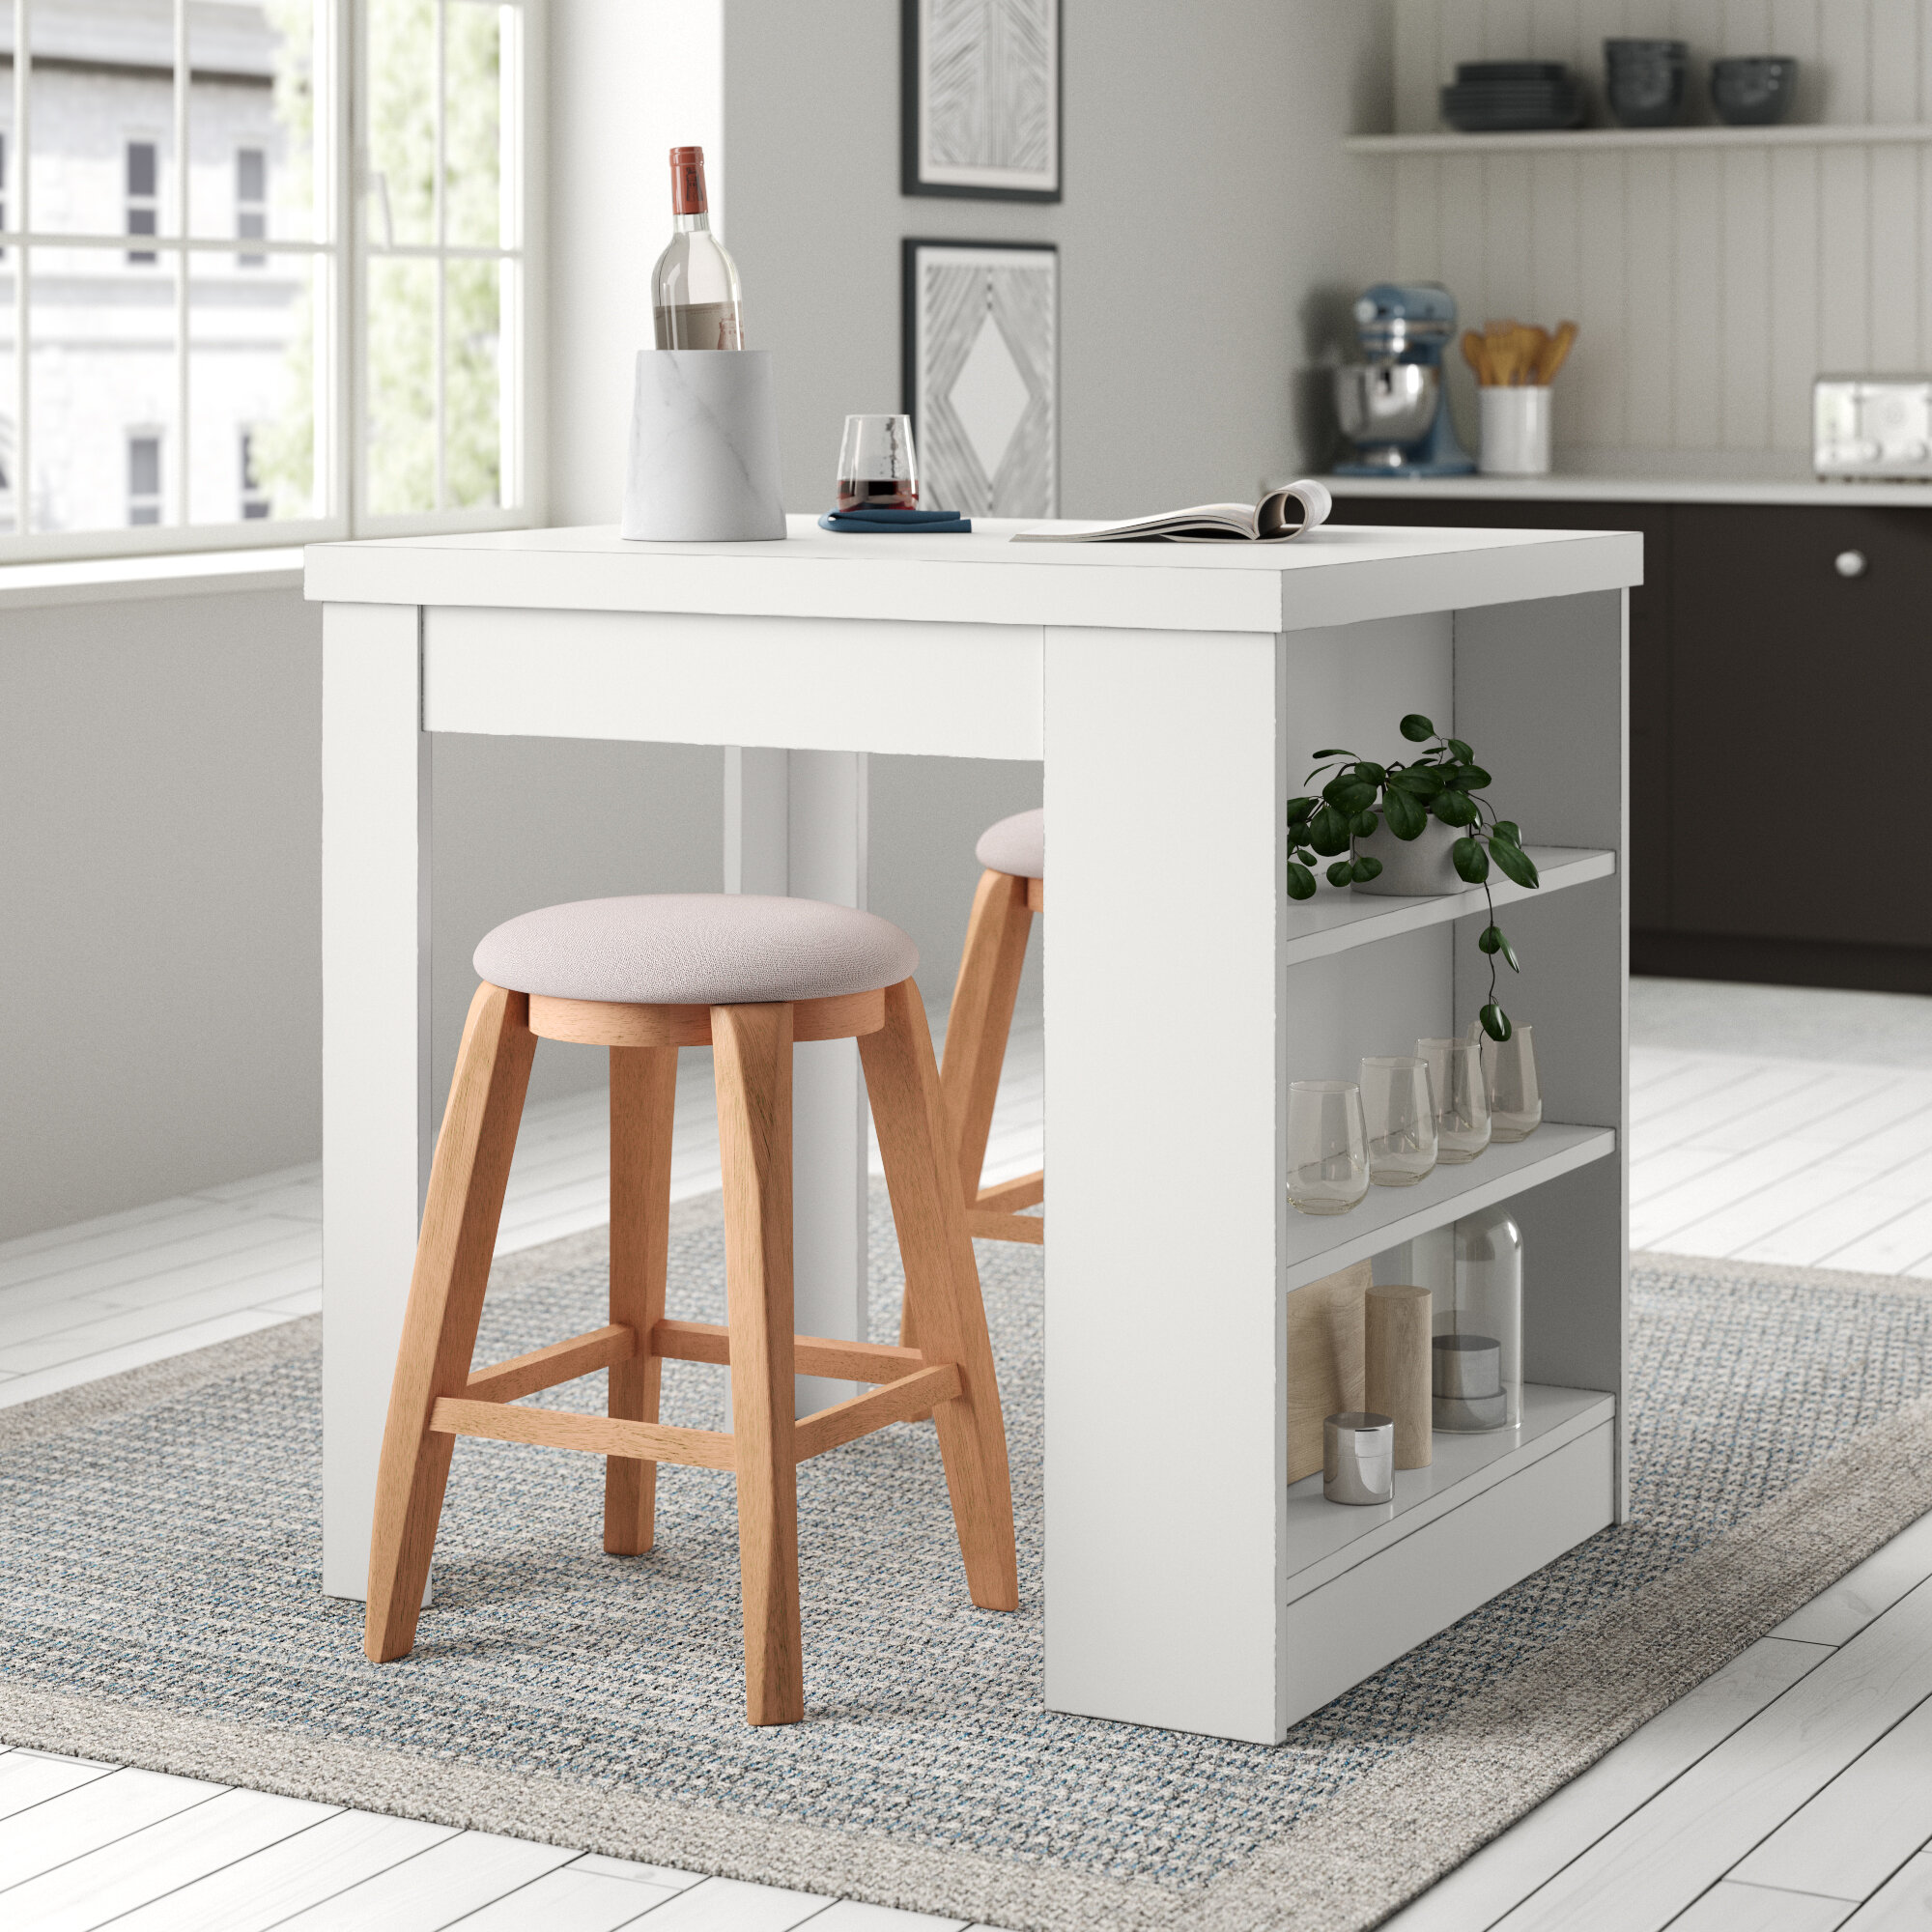 2 Seat Rectangular Kitchen Dining Tables You Ll Love In 2021 Wayfair